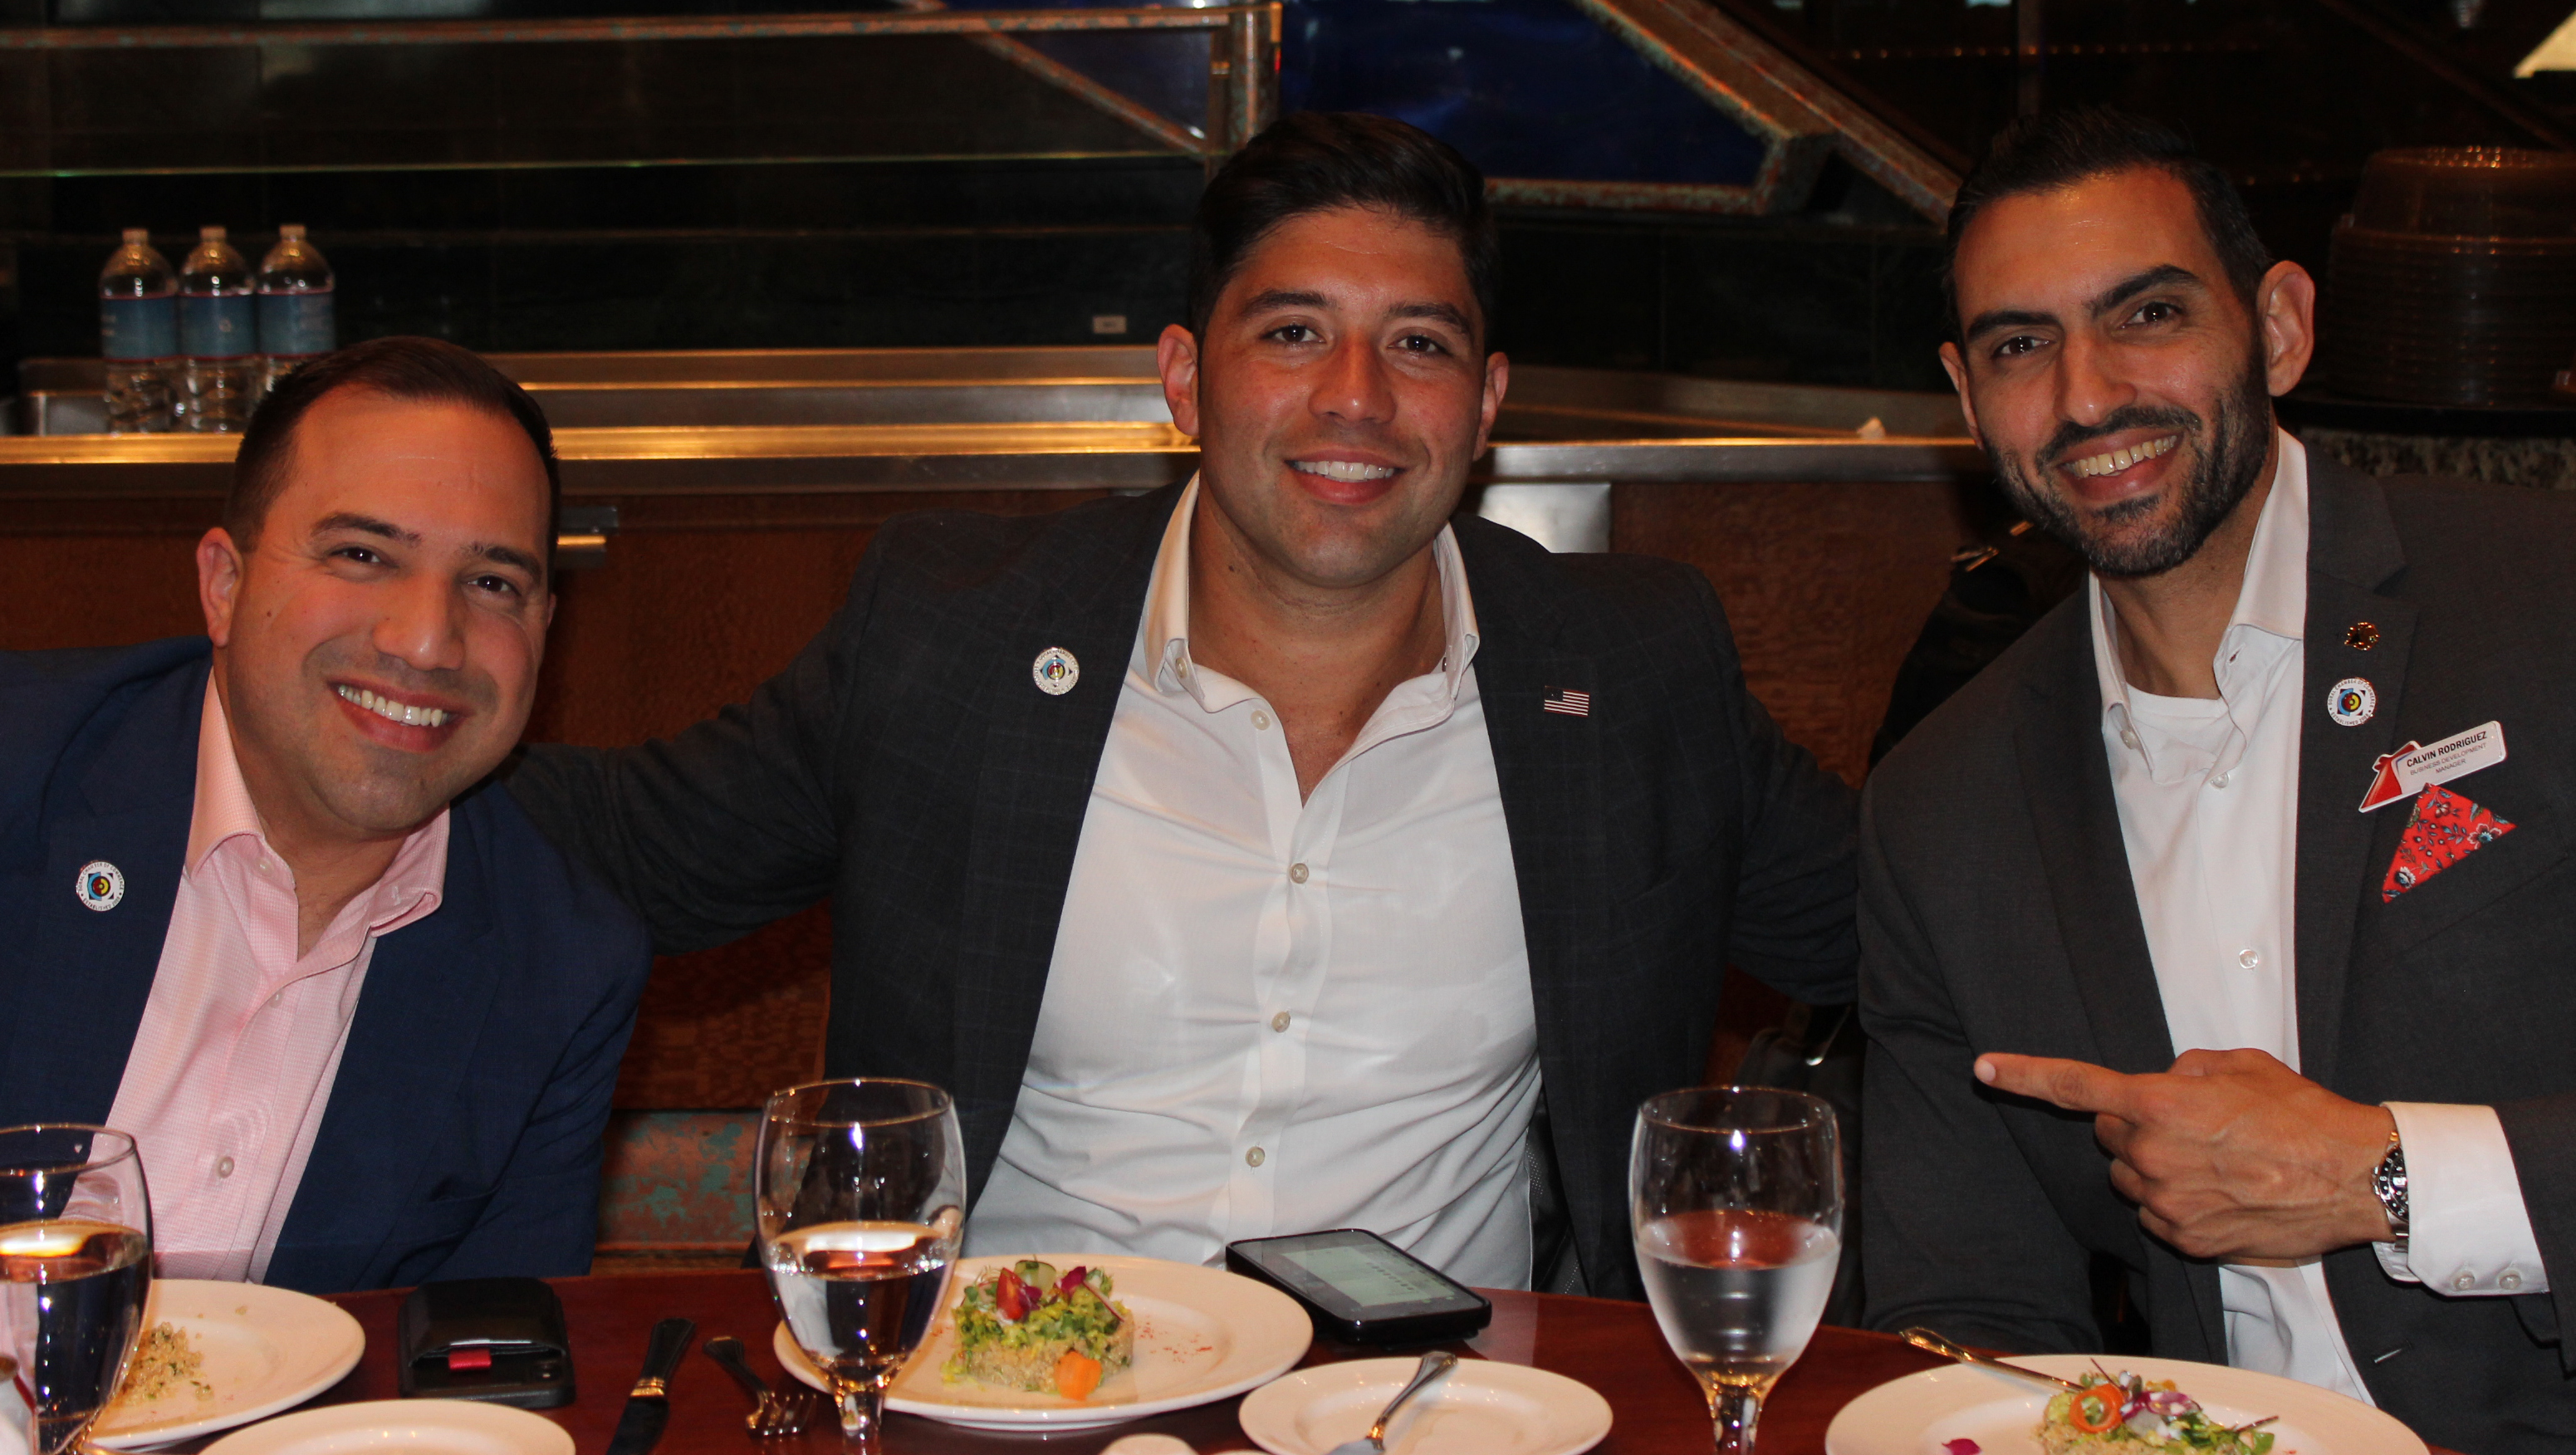 Doral Chamber of Commerce Carnival Cruise Luncheon 2019, Networking Event in Miami, Florida. PereGonza with Carnival Cruise Victory Host.